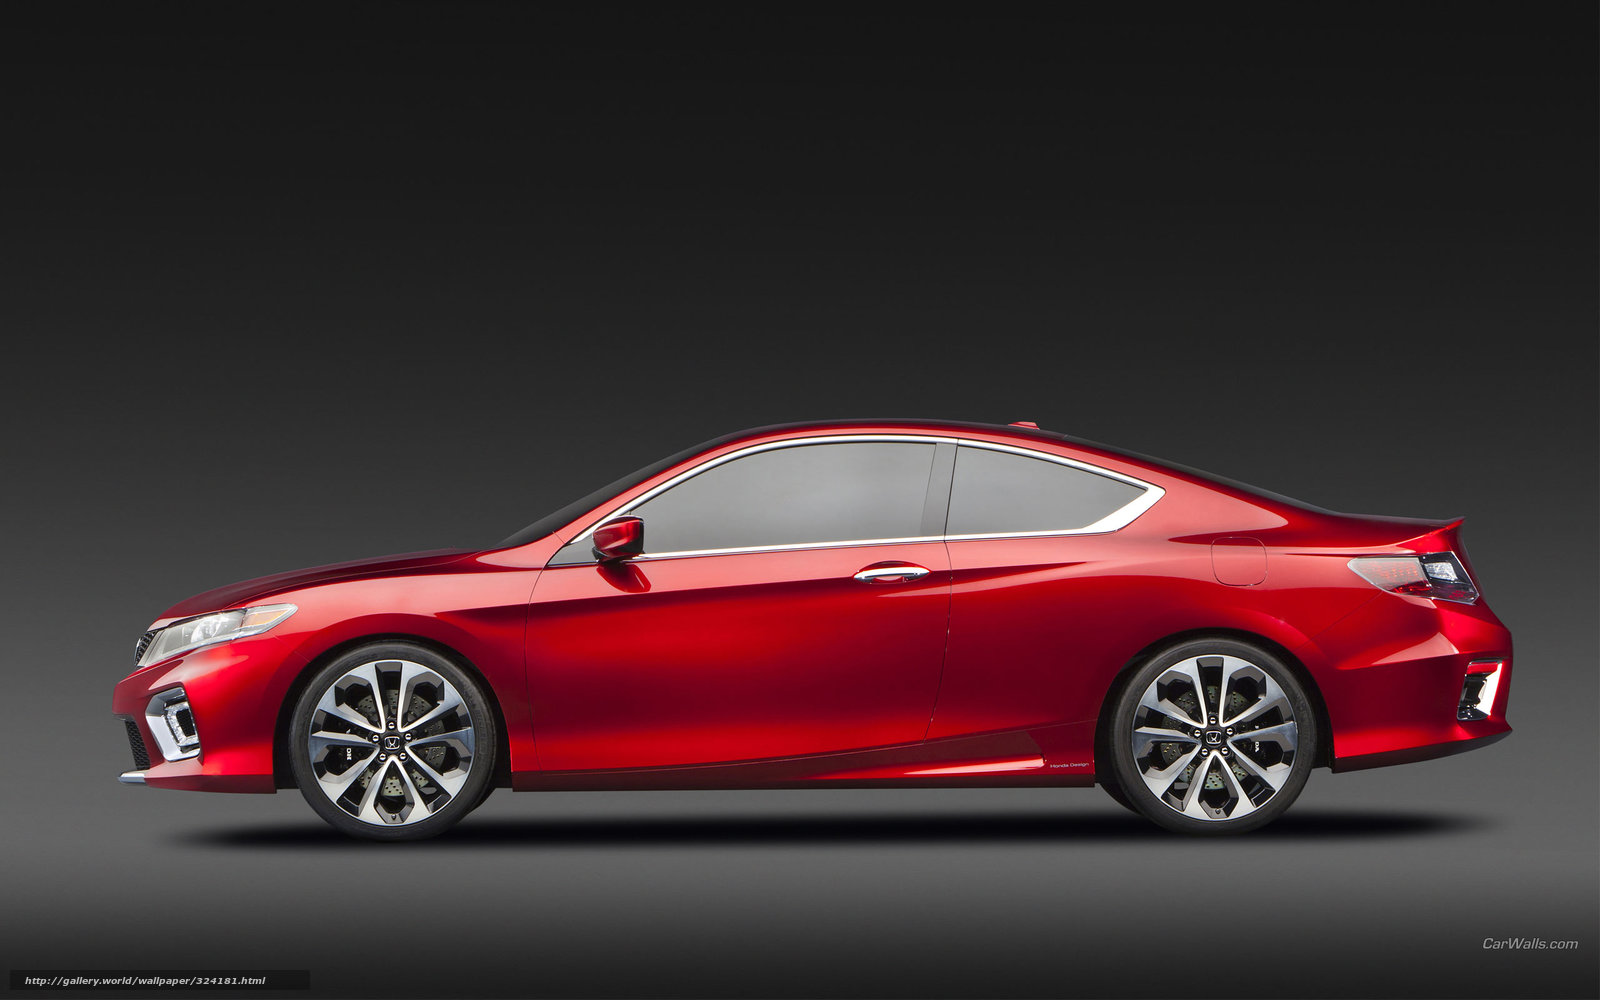 Download Wallpaper Honda Accord Car Machinery Free